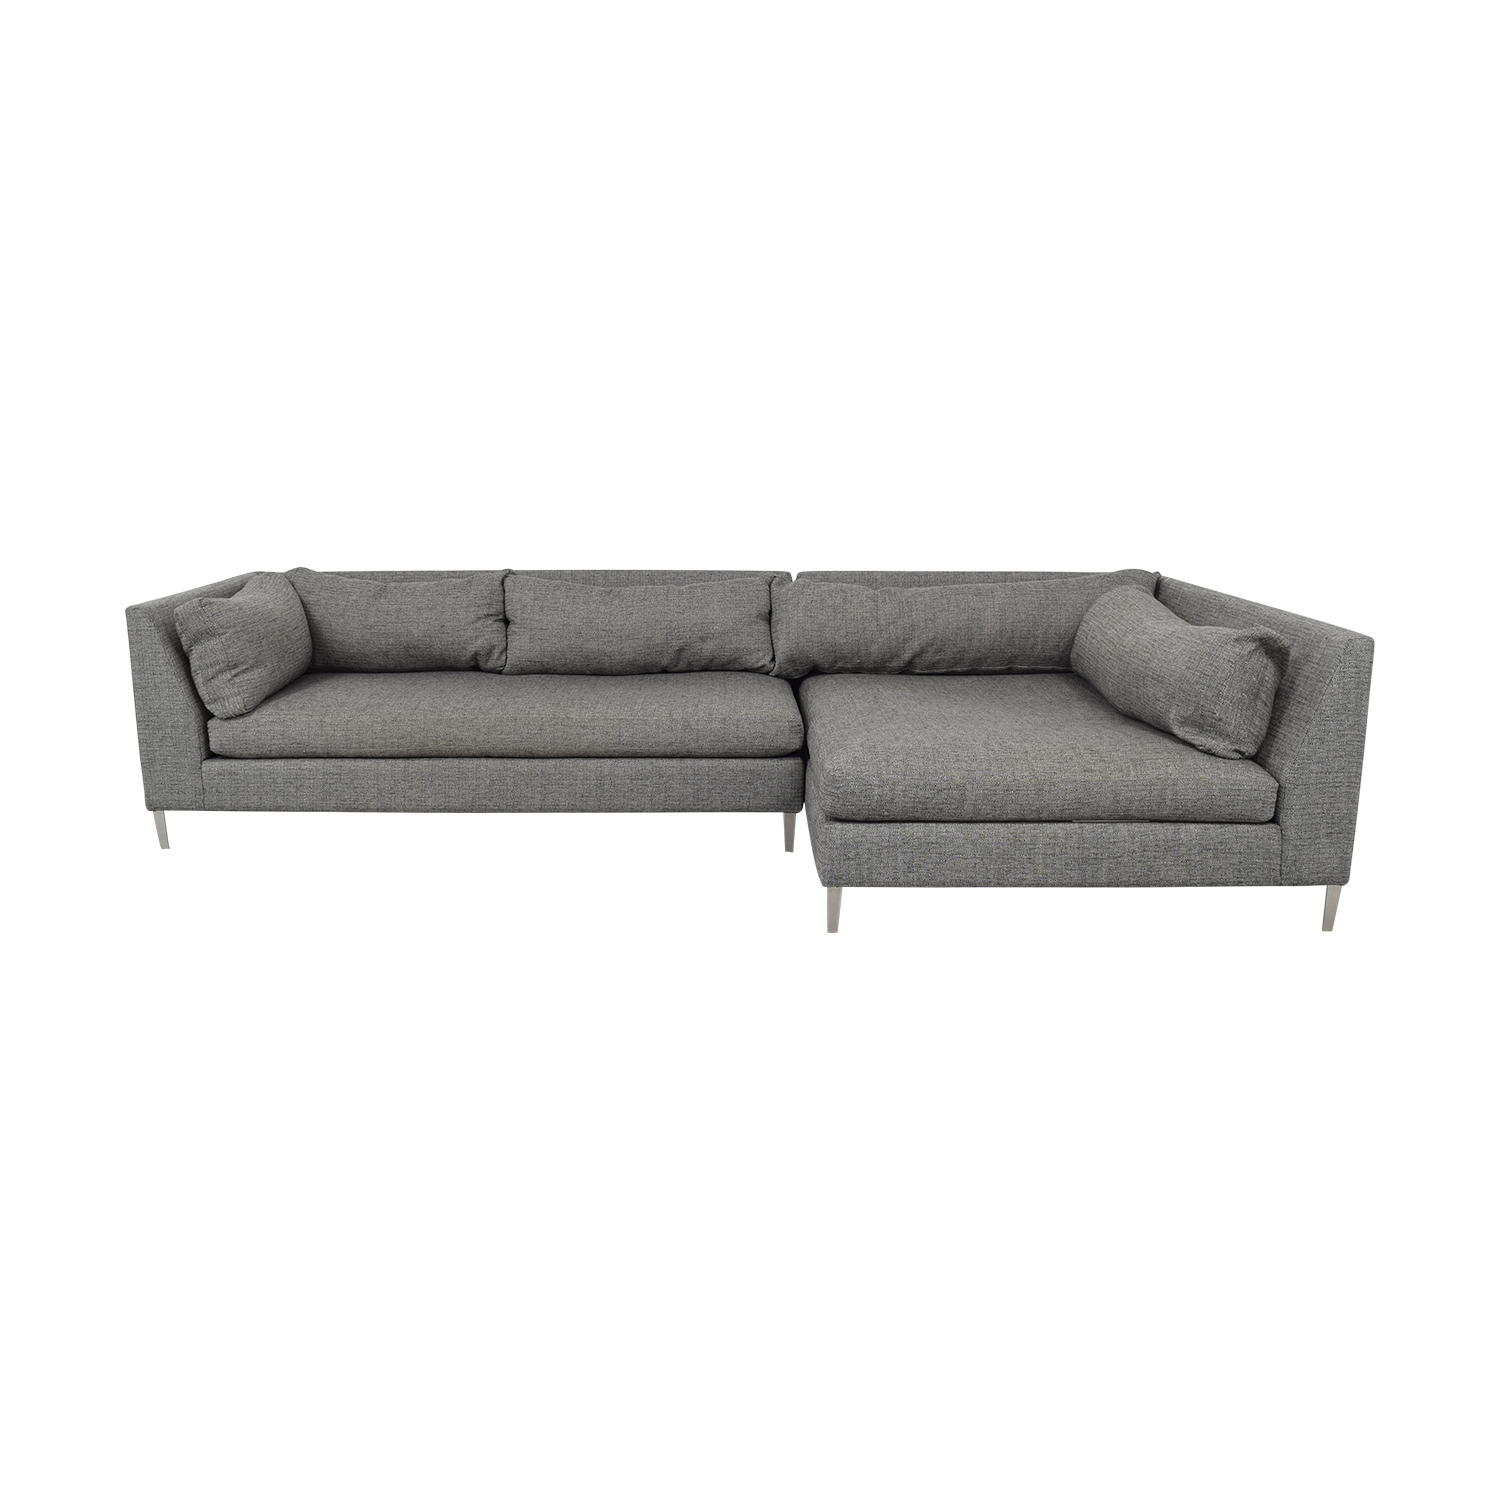 CB2 CB2 Decker Two Piece Sectional Sofa used